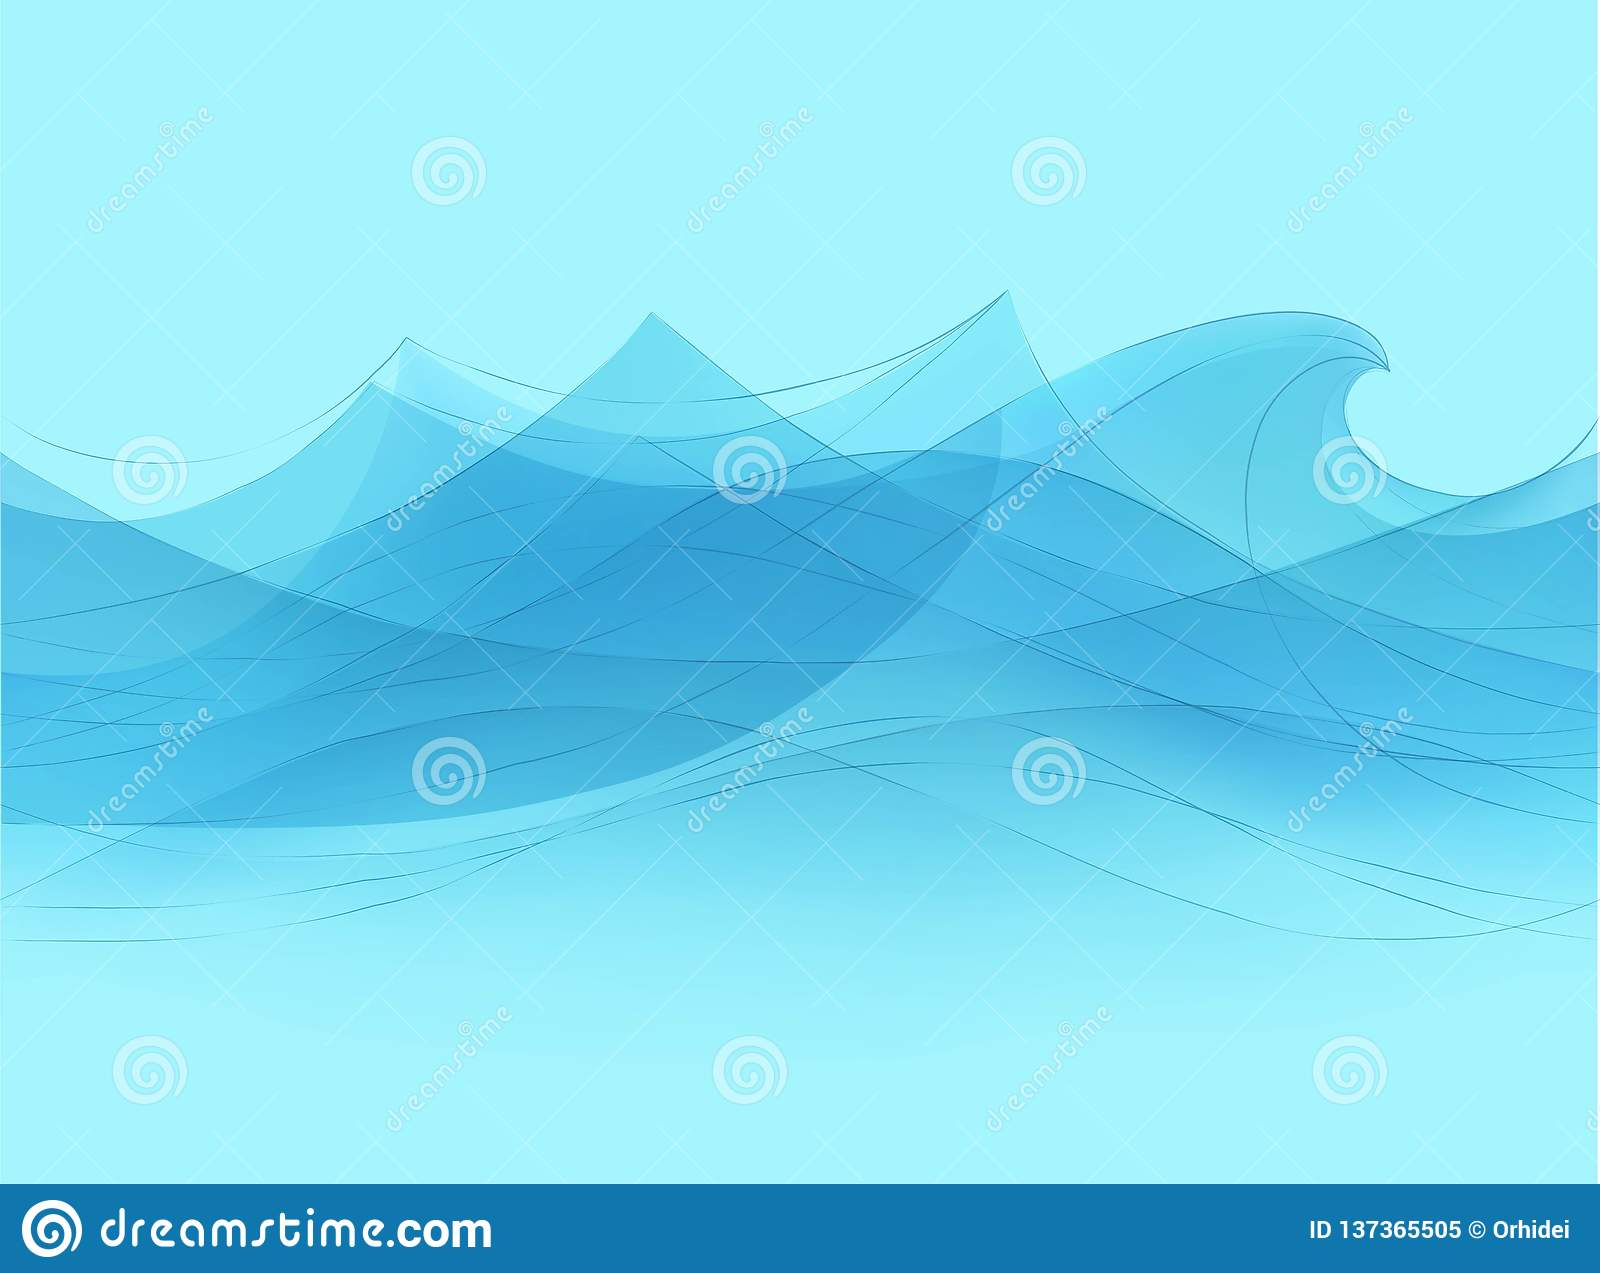 Blue Water Sea Waves Abstract Vector Background Water Wave